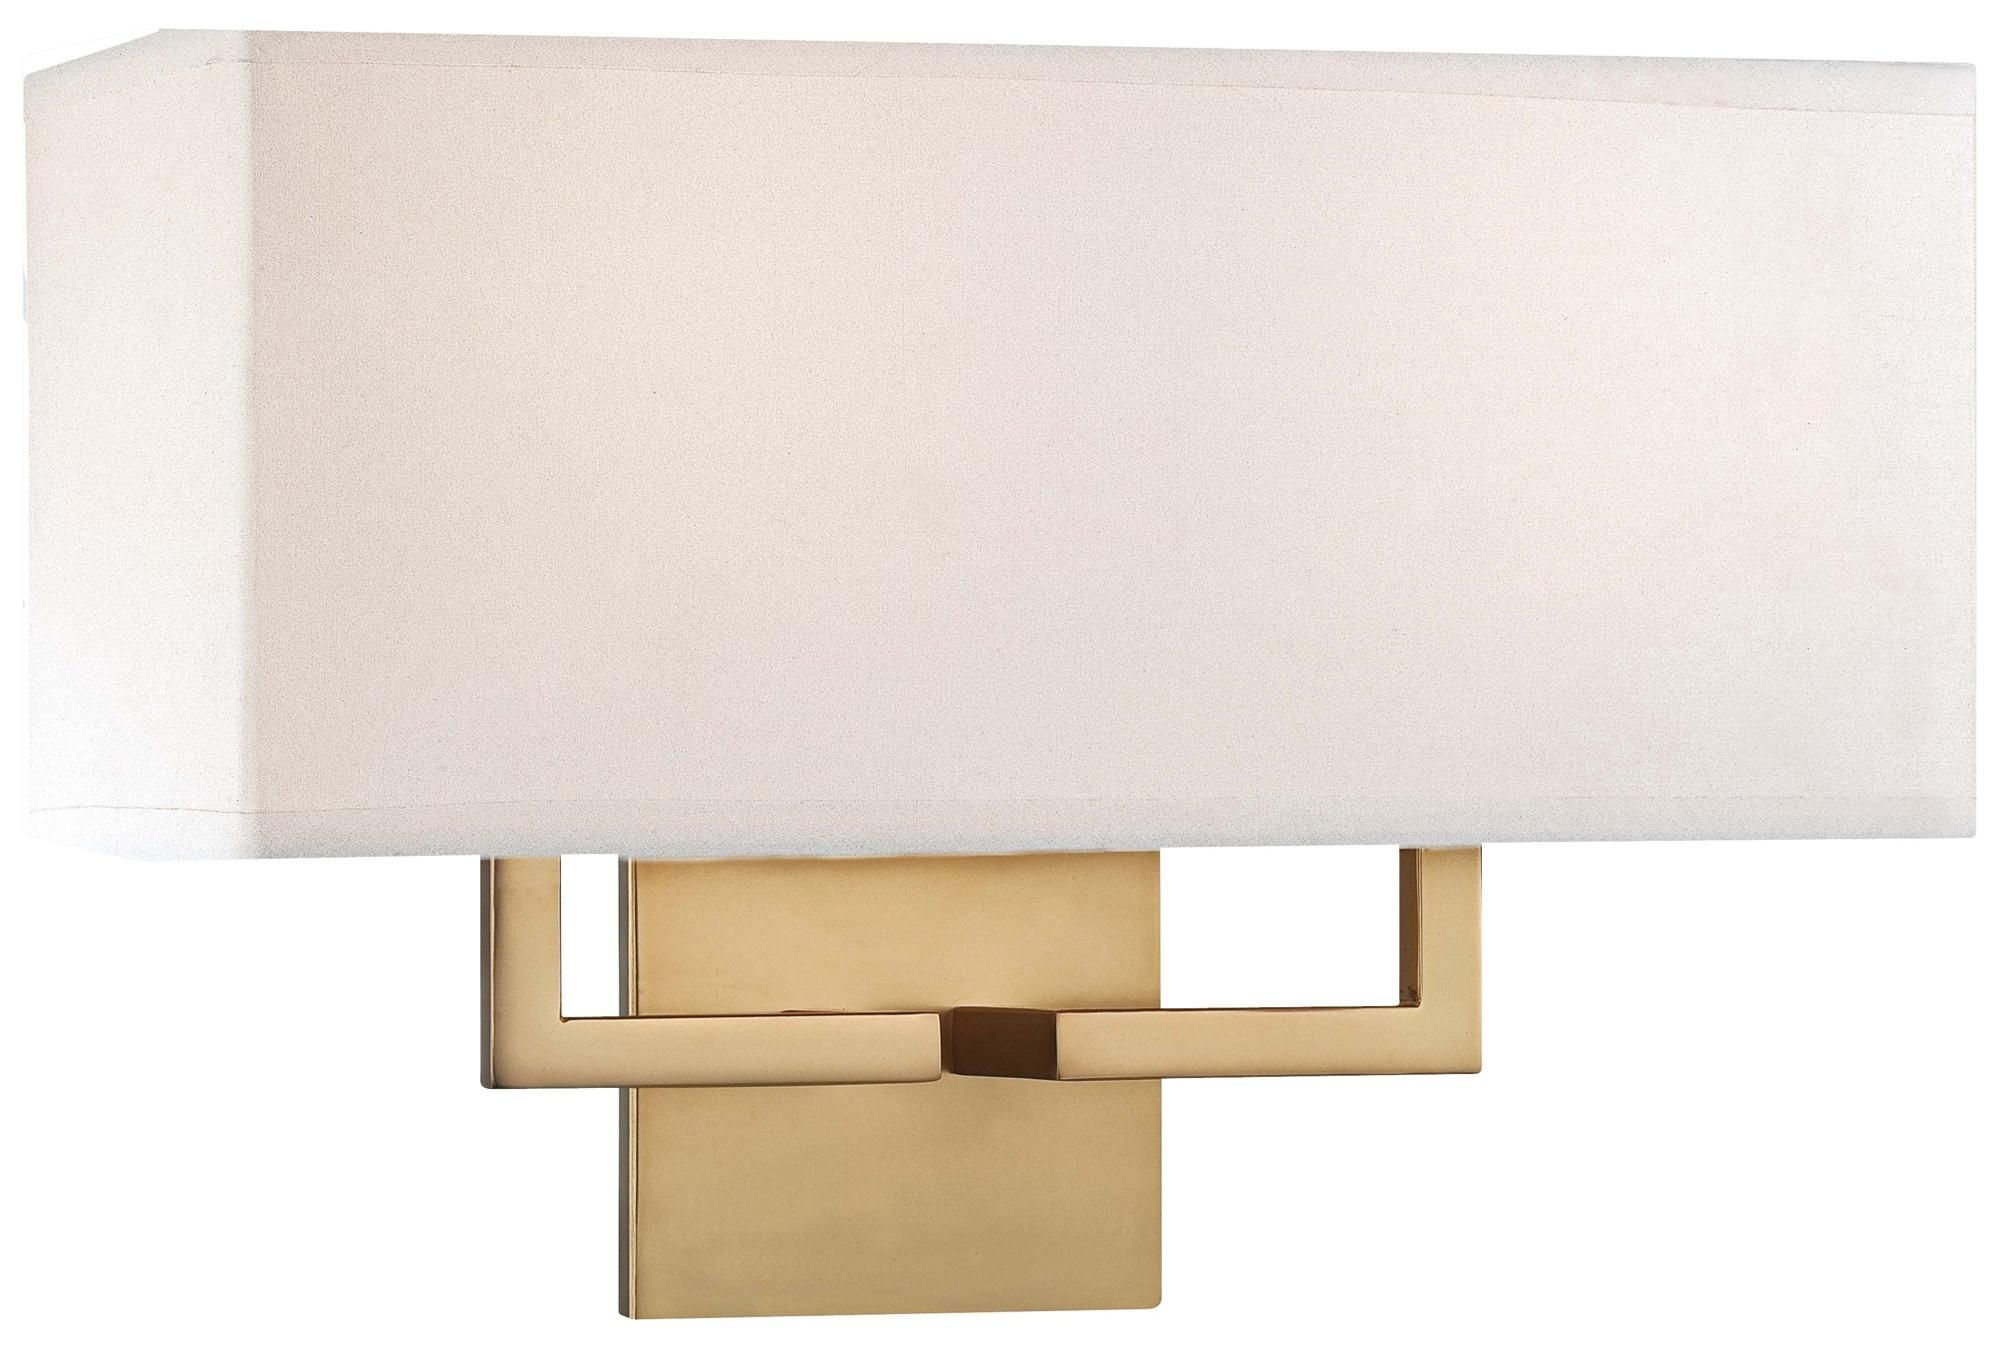 George Kovacs Rectangle 11 High Gold Wall Sconce W1297 Lamps Plus Gold Wall Sconce Wall Sconces Indoor Wall Sconces